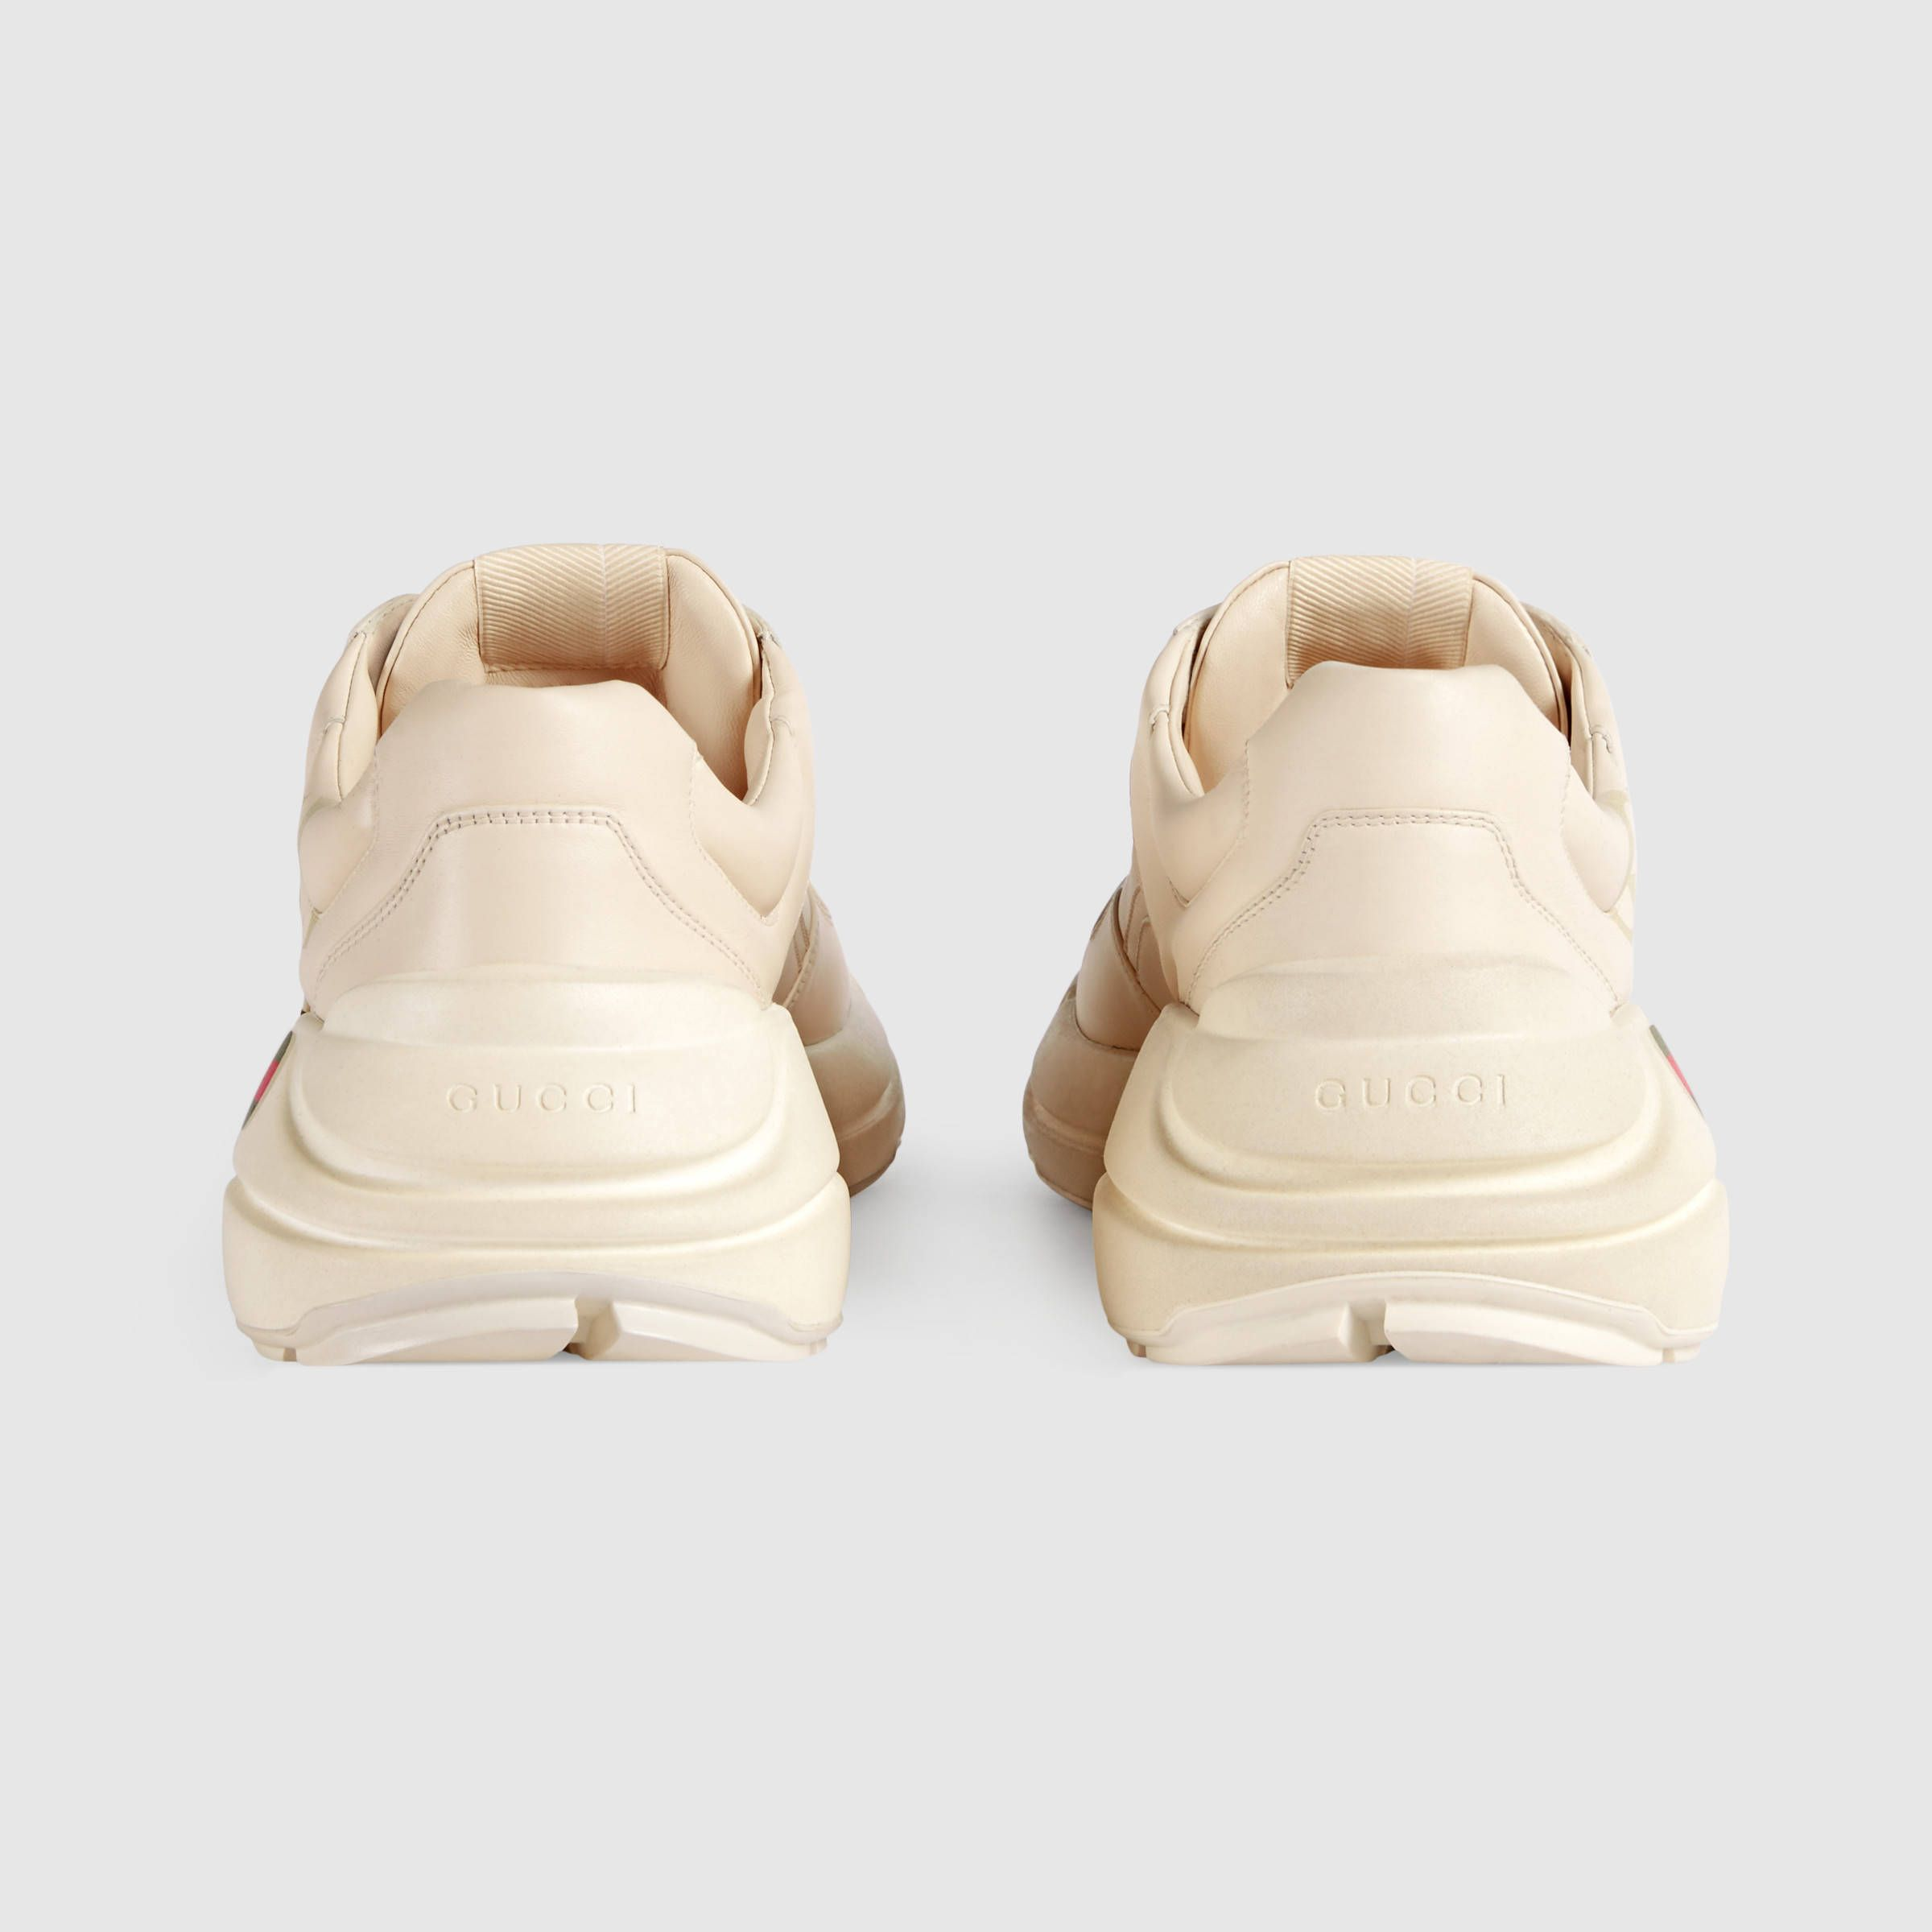 553a88aeb3b9  820.00 GUCCI - Gucci Rhyton Gucci logo leather sneaker - SOLD by GUCCI -  affiliate - Designed with a thick sole and bulky construction The sneaker  has a ...